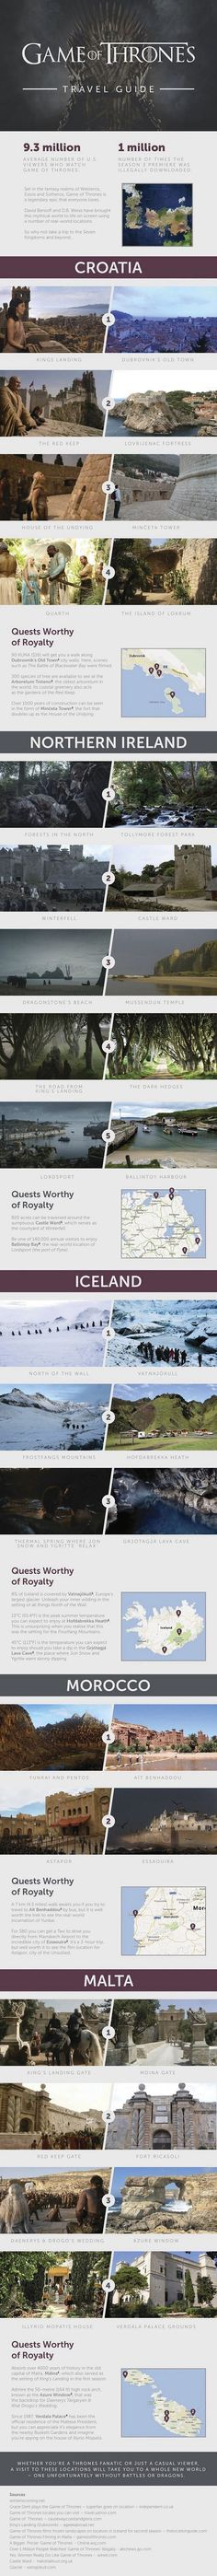 Game of Thrones inspired destinations